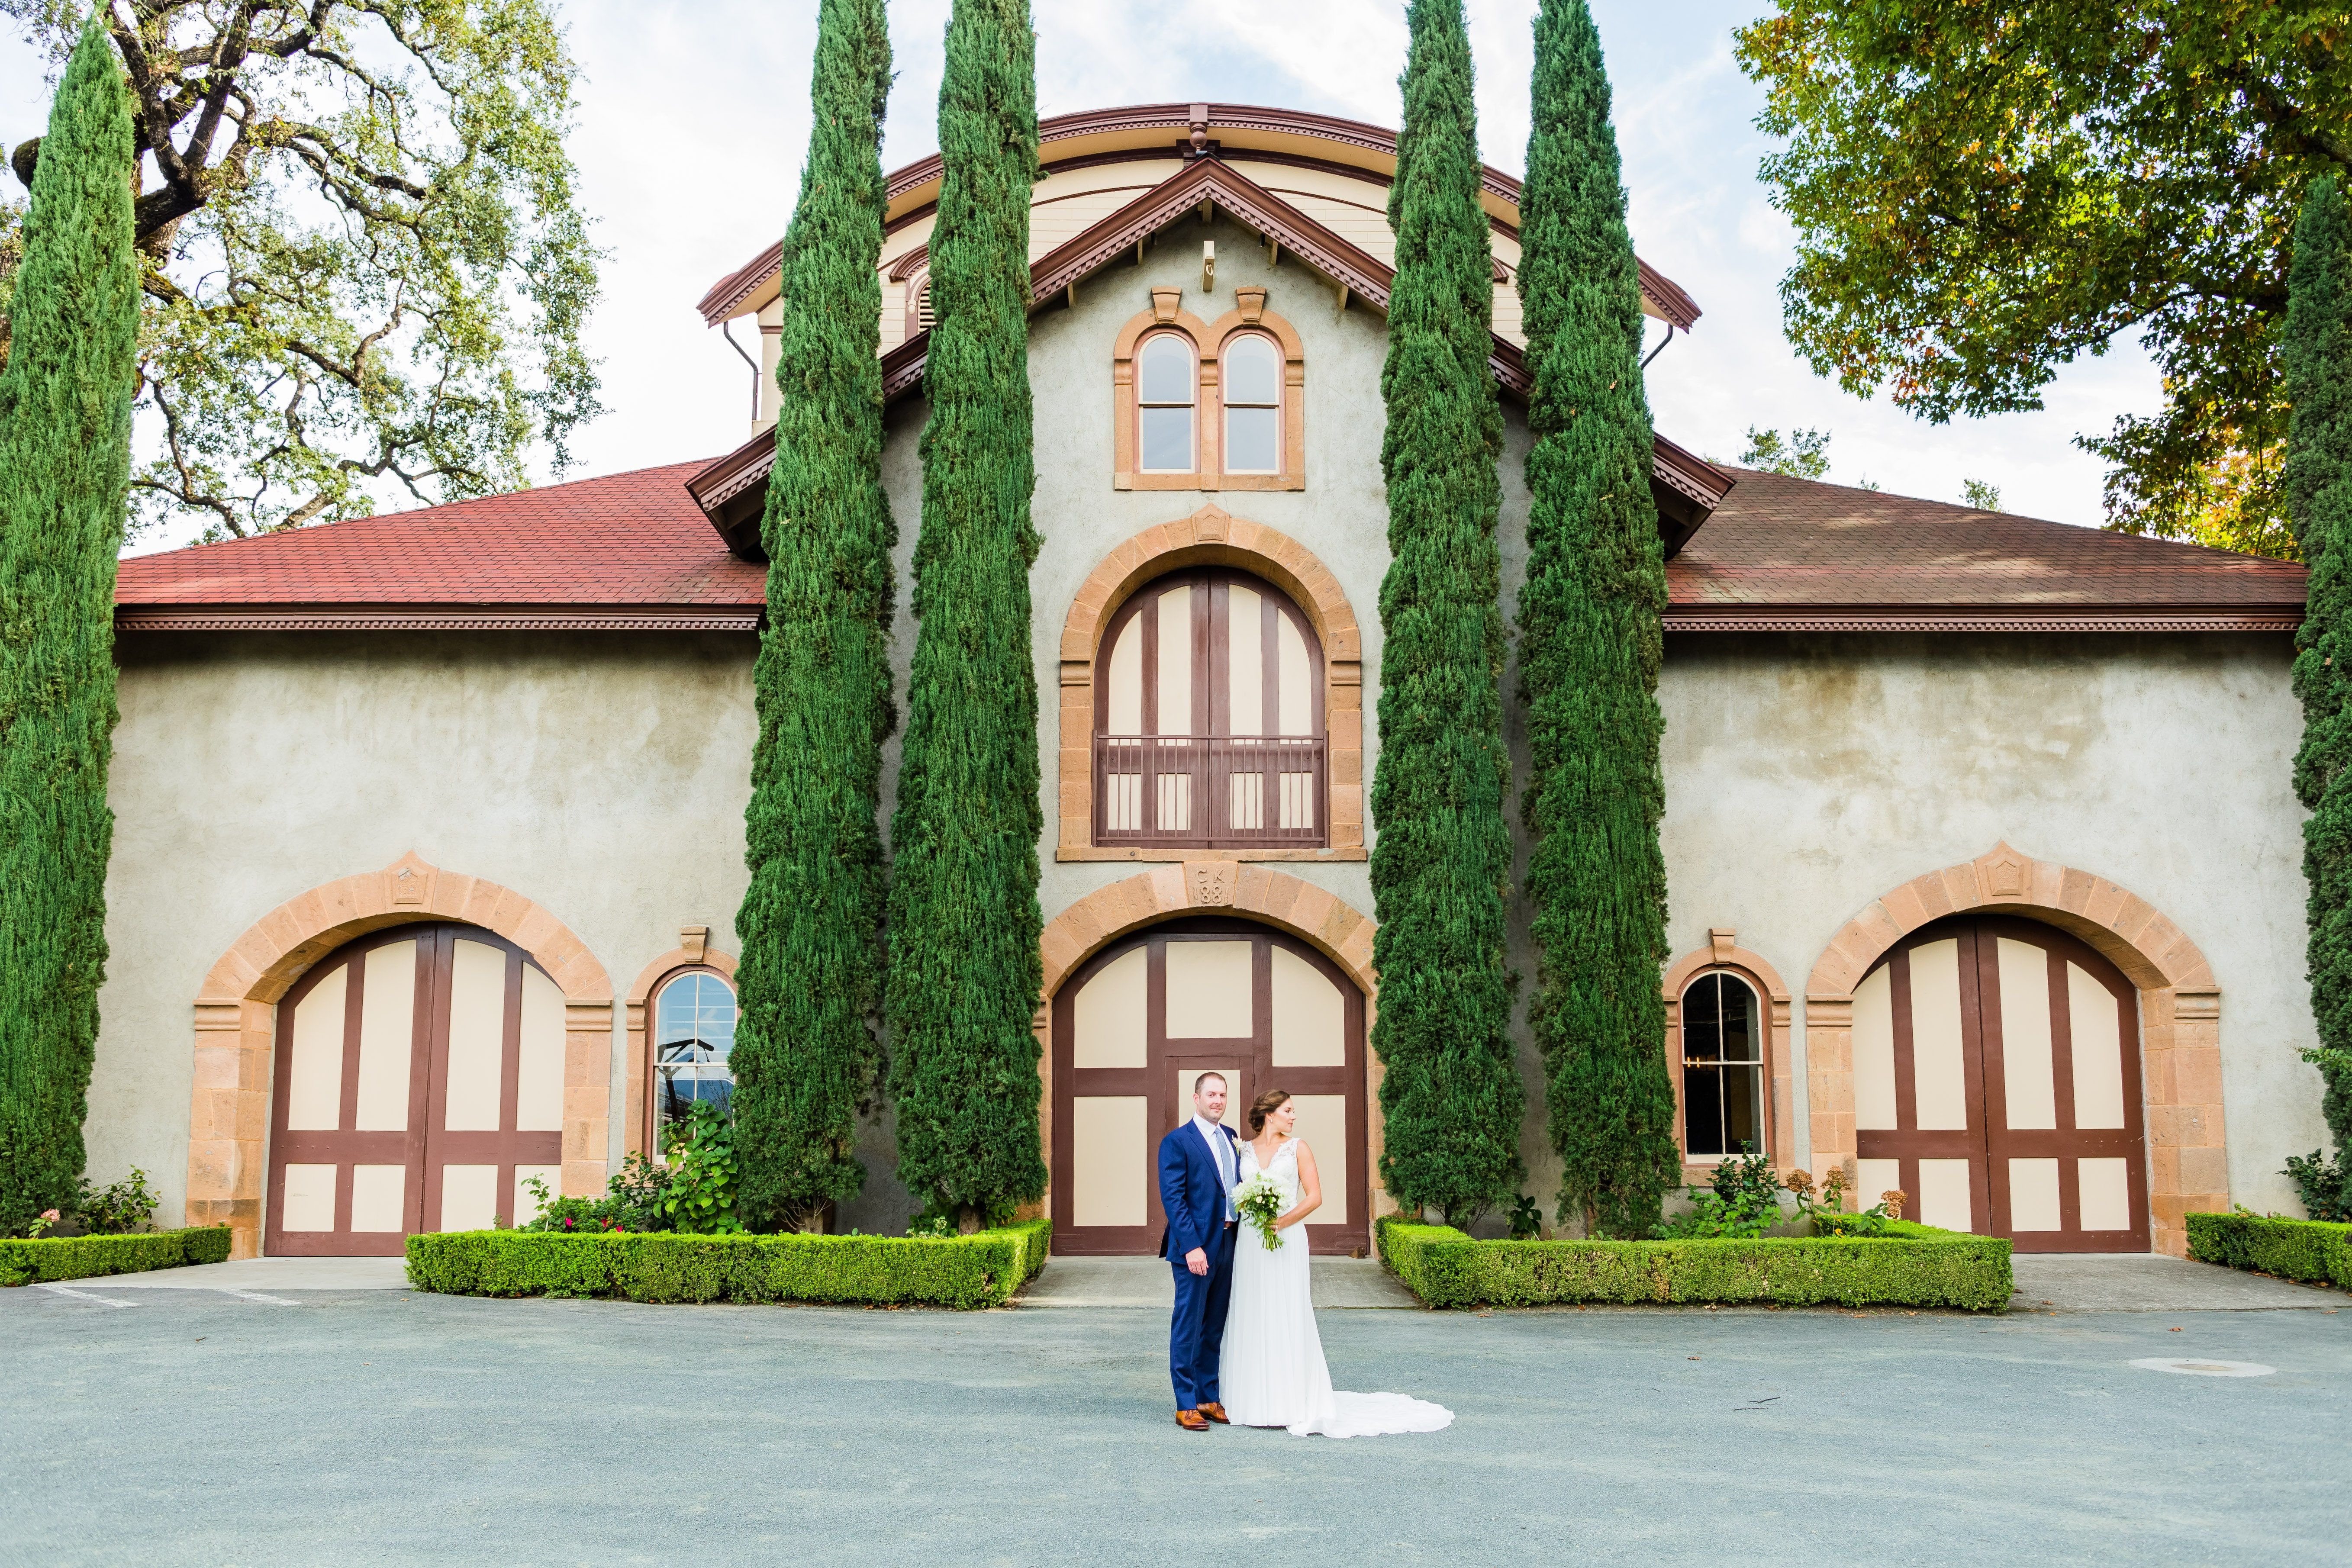 Wine country wedding venue charles krug is a perfect place for your